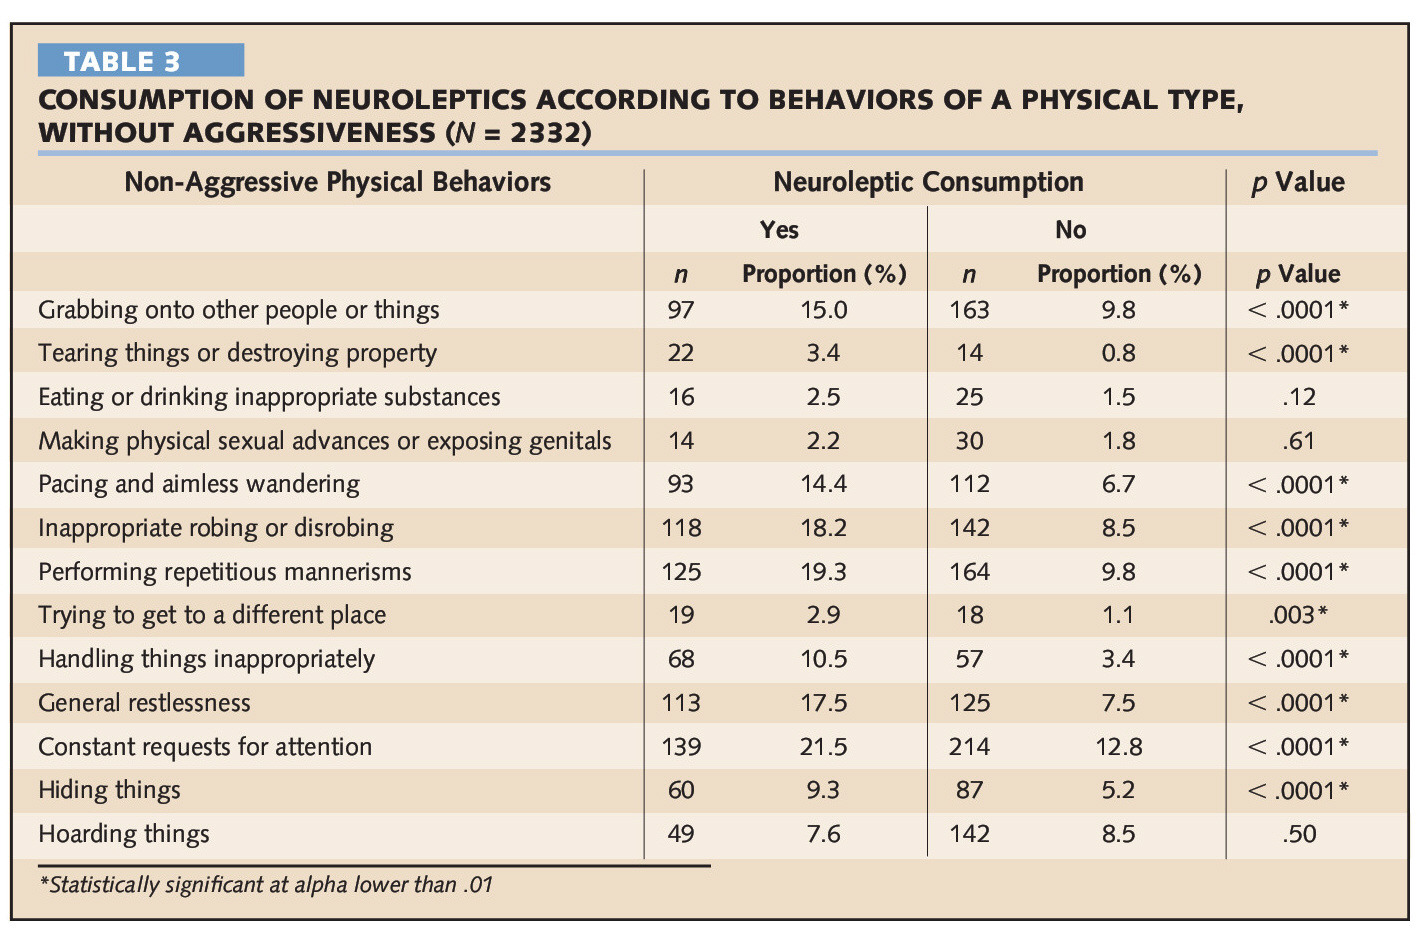 TABLE 3CONSUMPTION OF NEUROLEPTICS ACCORDING TO BEHAVIORS OF A PHYSICAL TYPE, WITHOUT AGGRESSIVENESS (N = 2332)